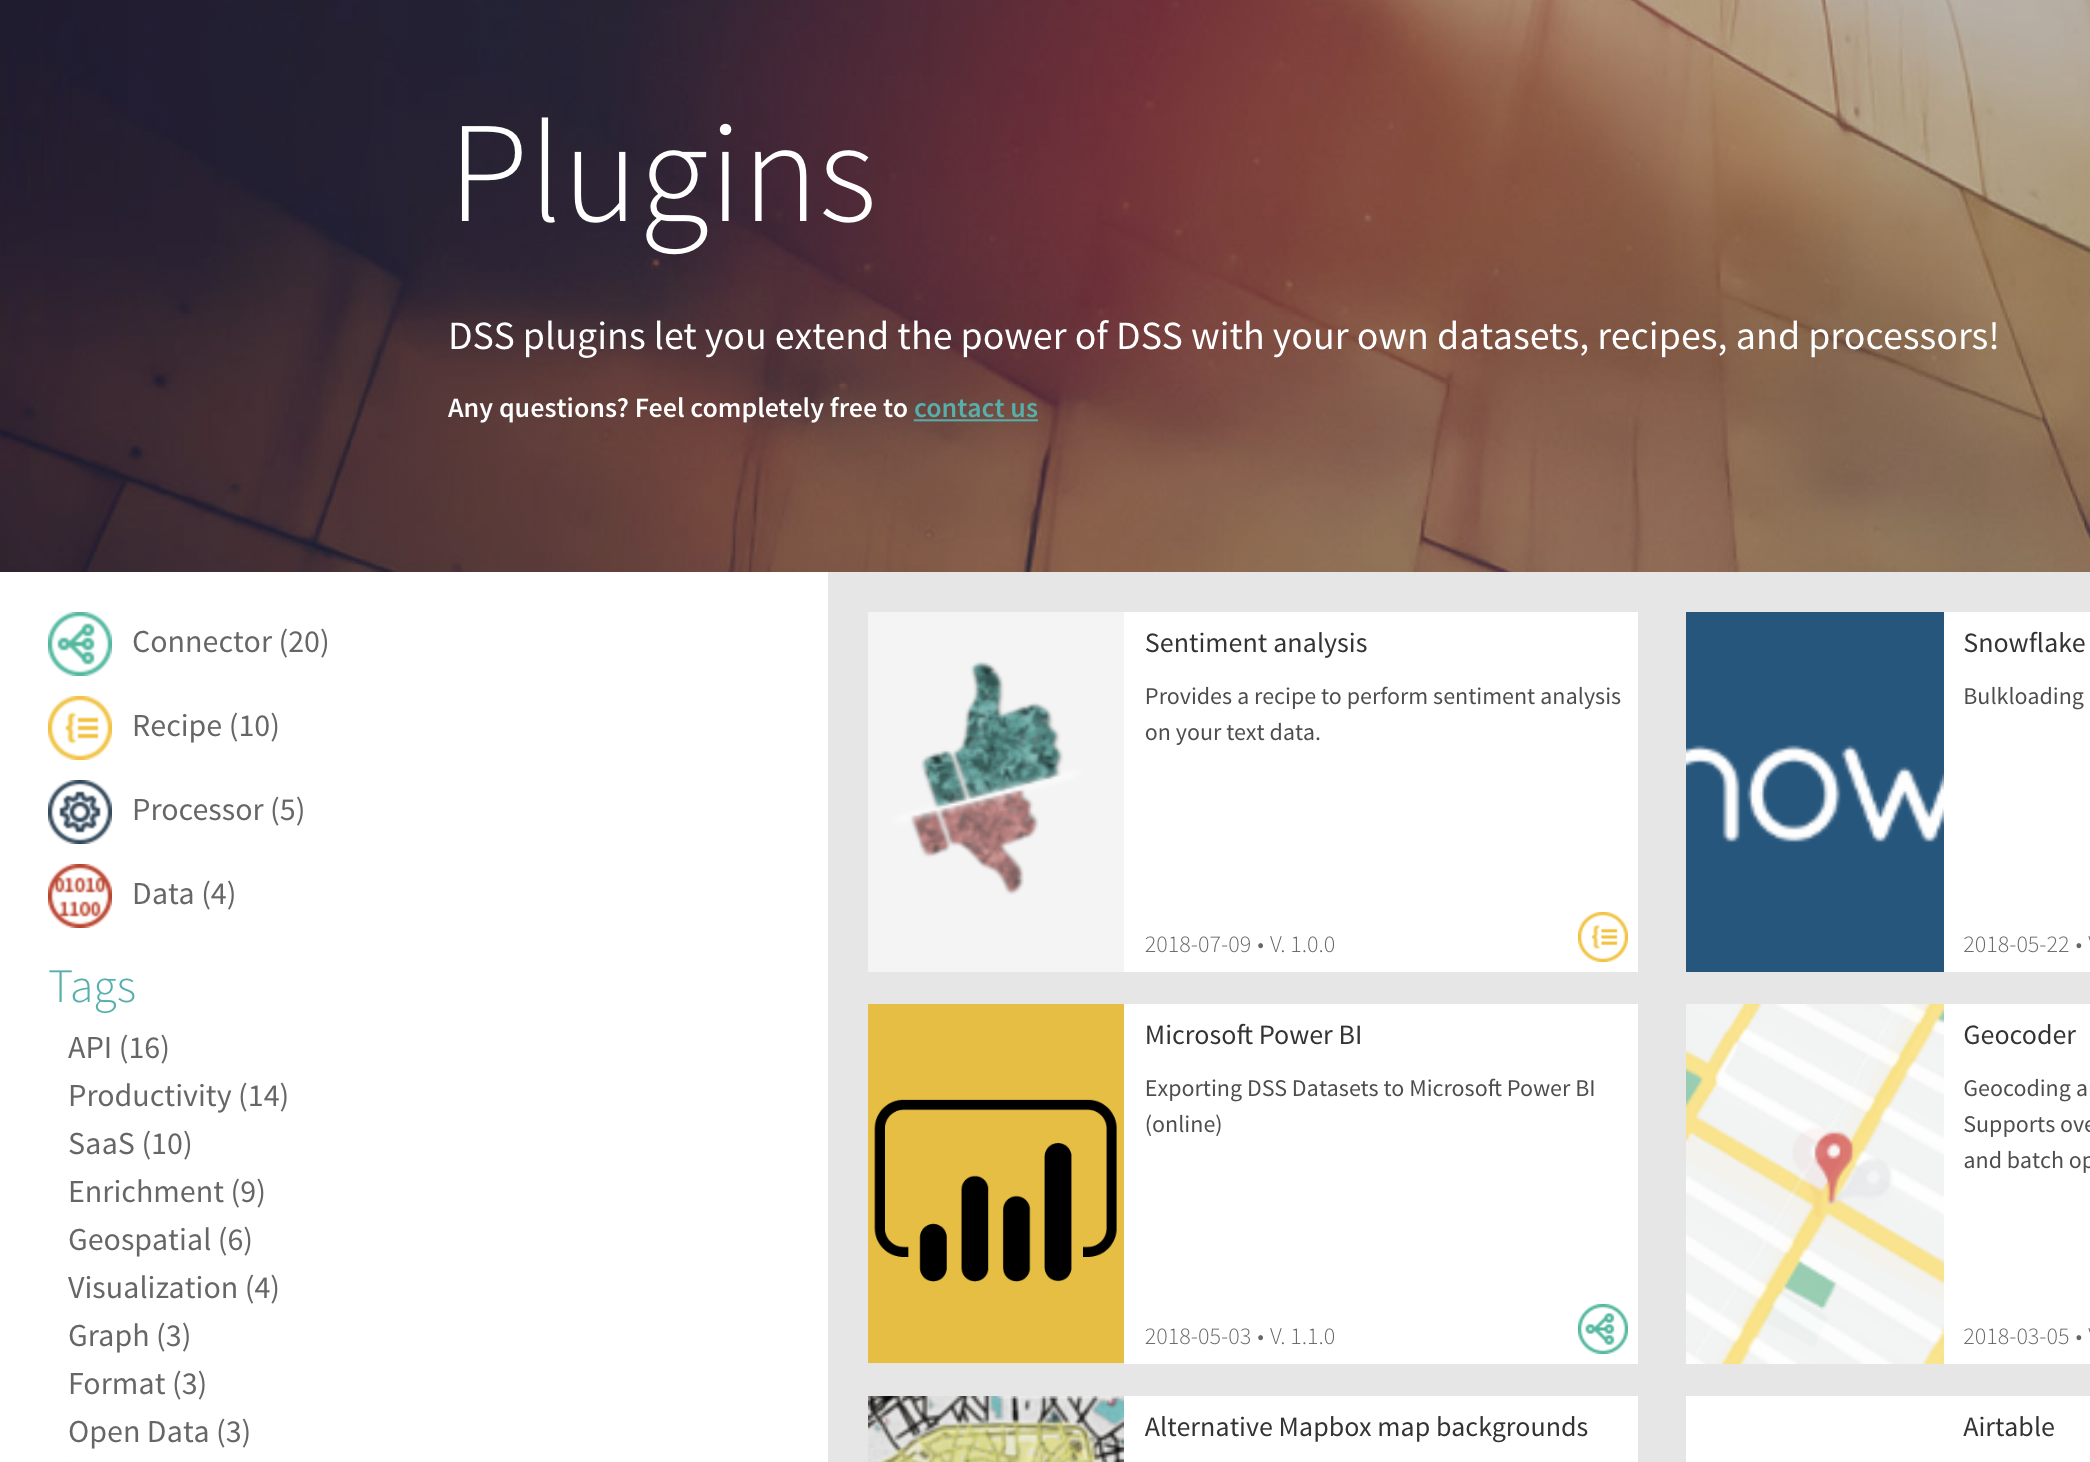 Website screenshot: DSS plugins let you extend the power of DSS